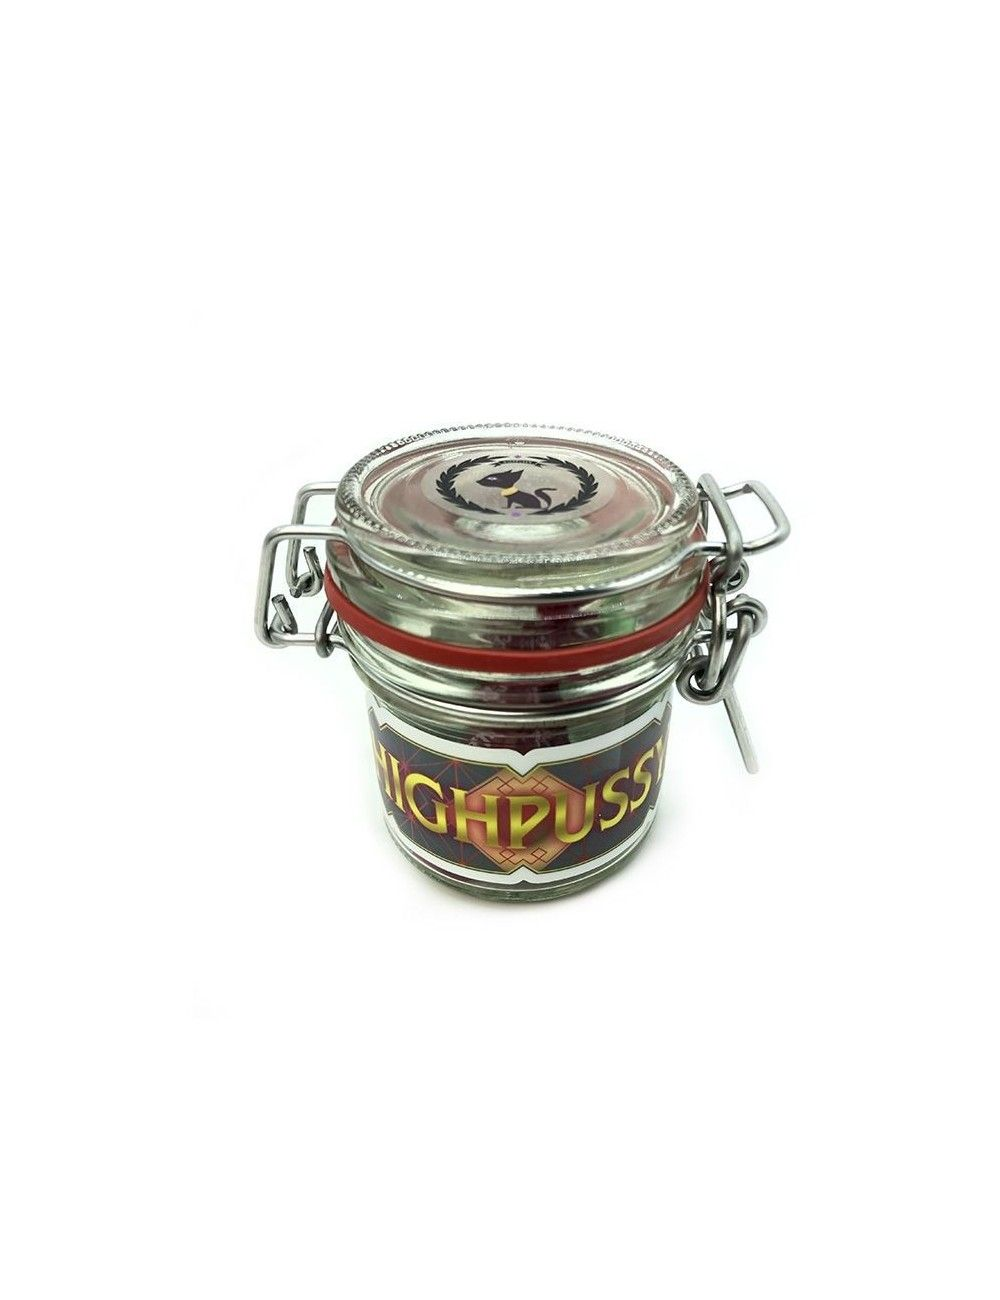 HighPussy Jar 4oz Ancient Luxury